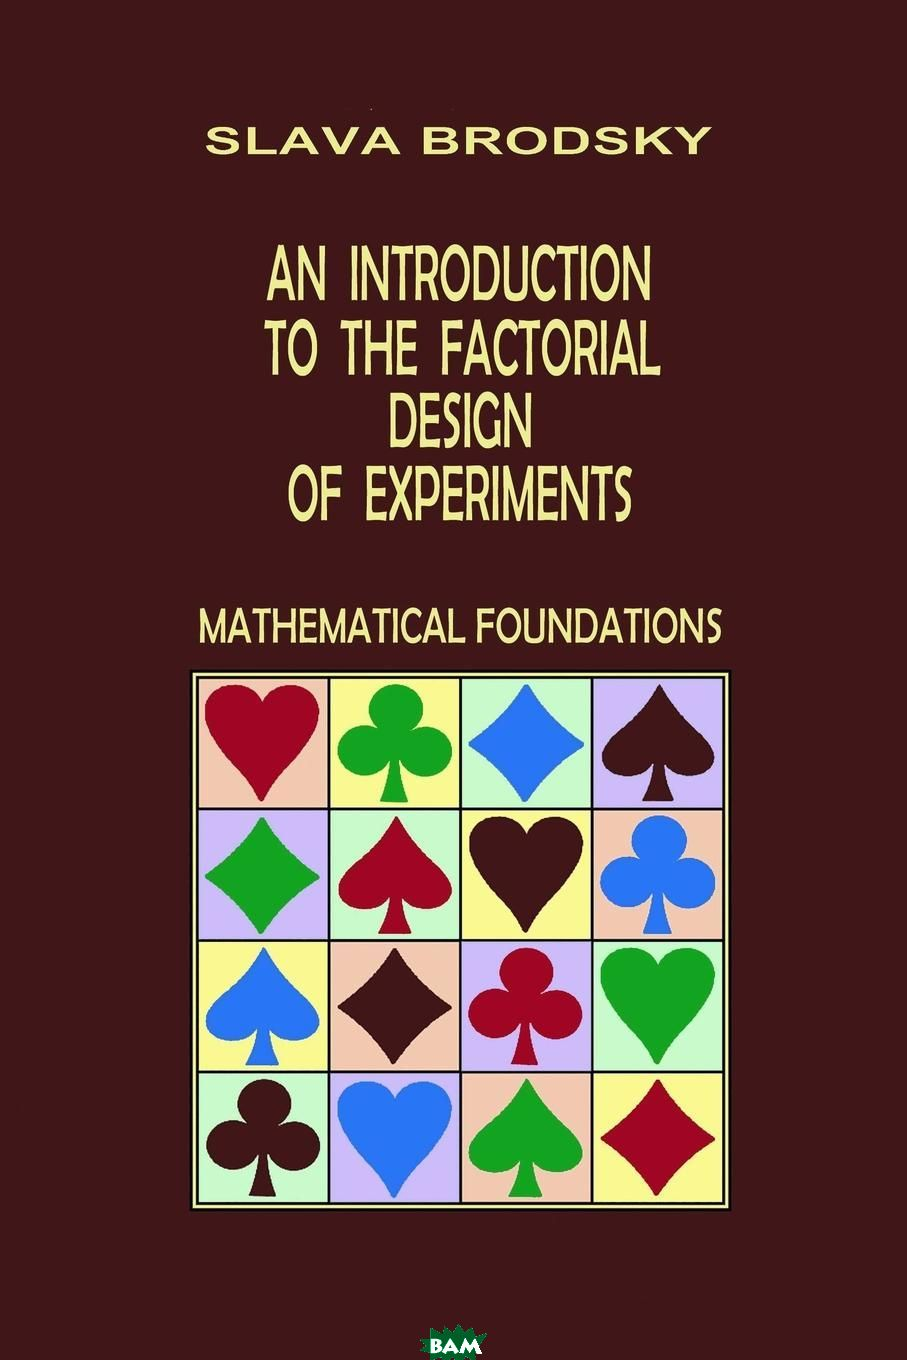 Купить An Introduction to the Factorial Design of Experiments (Mathematical Foundations), Slava Brodsky, 9781936581078